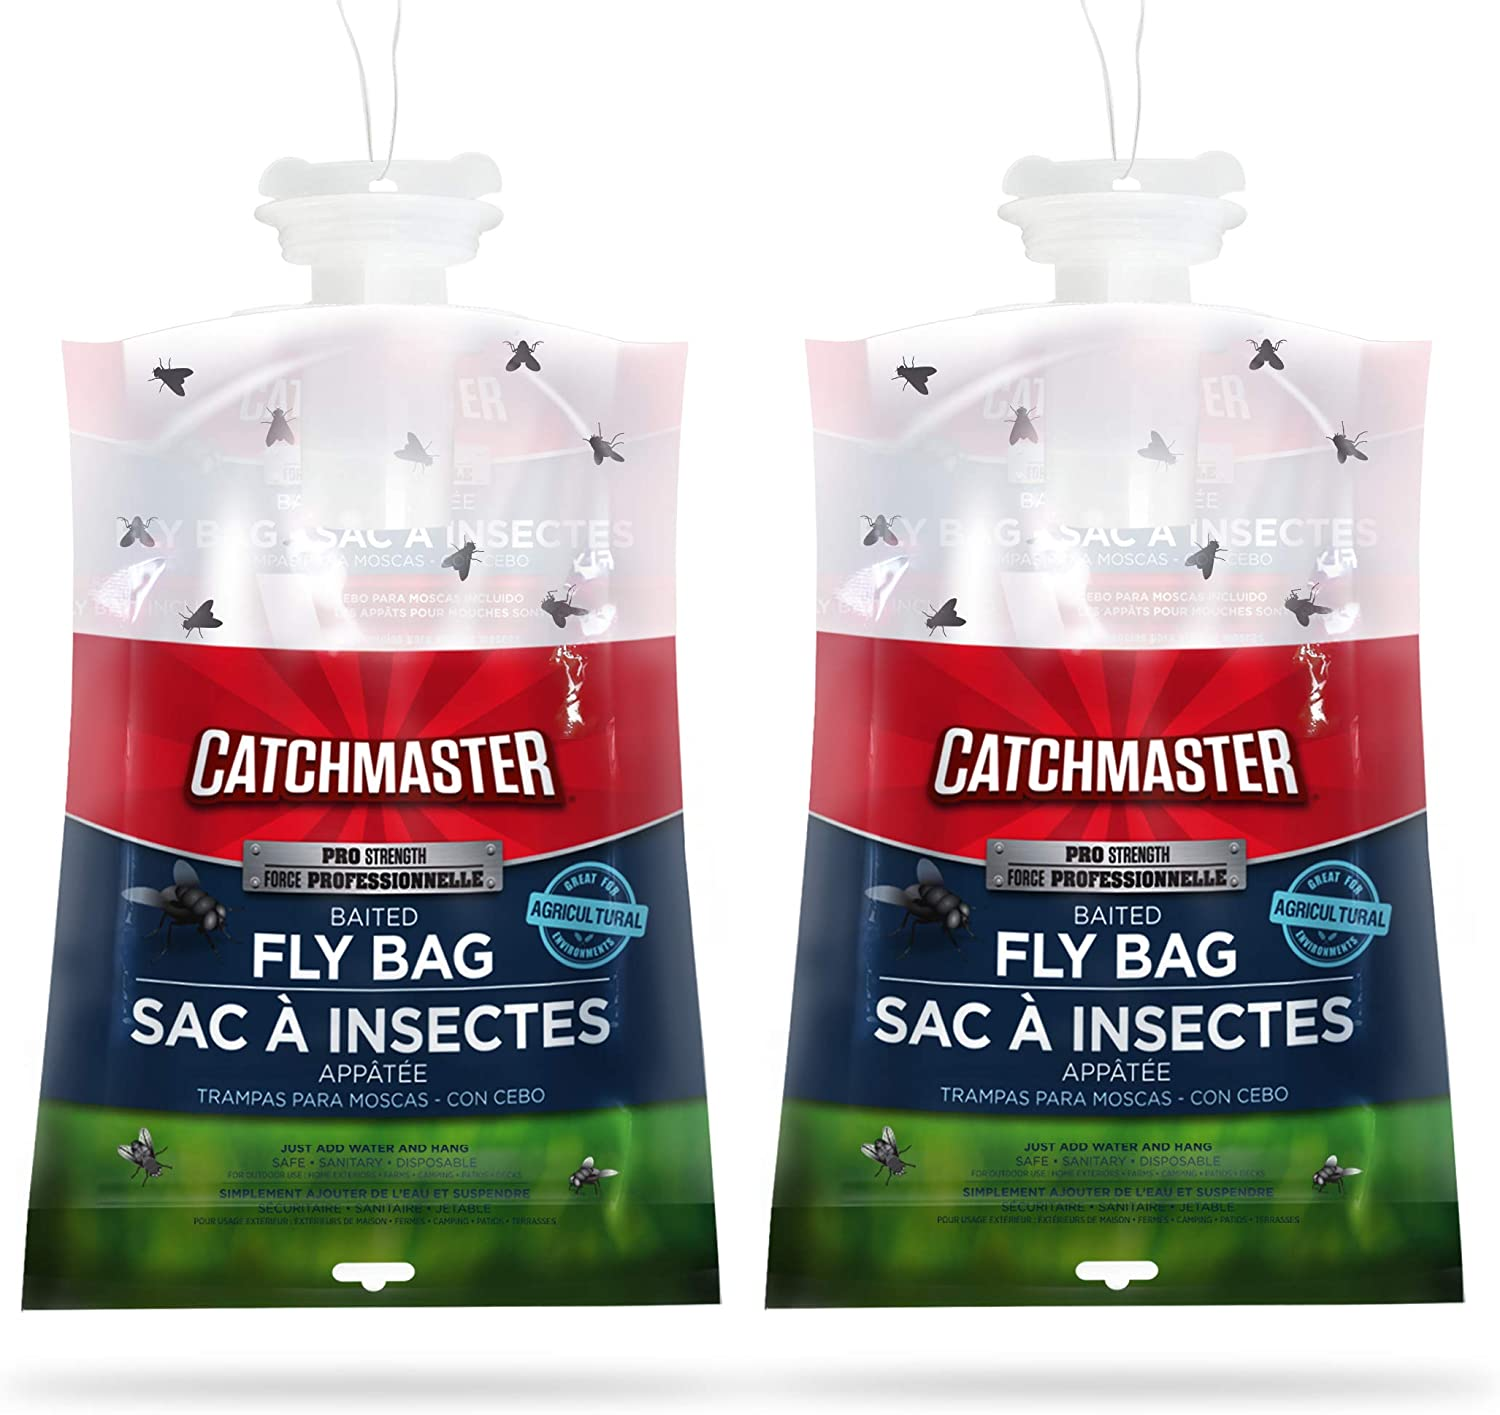 Catchmaster X-Large Outdoor Disposable Fly Bag Trap - Pack of 2 Fly Bags 714ecLmFxkL